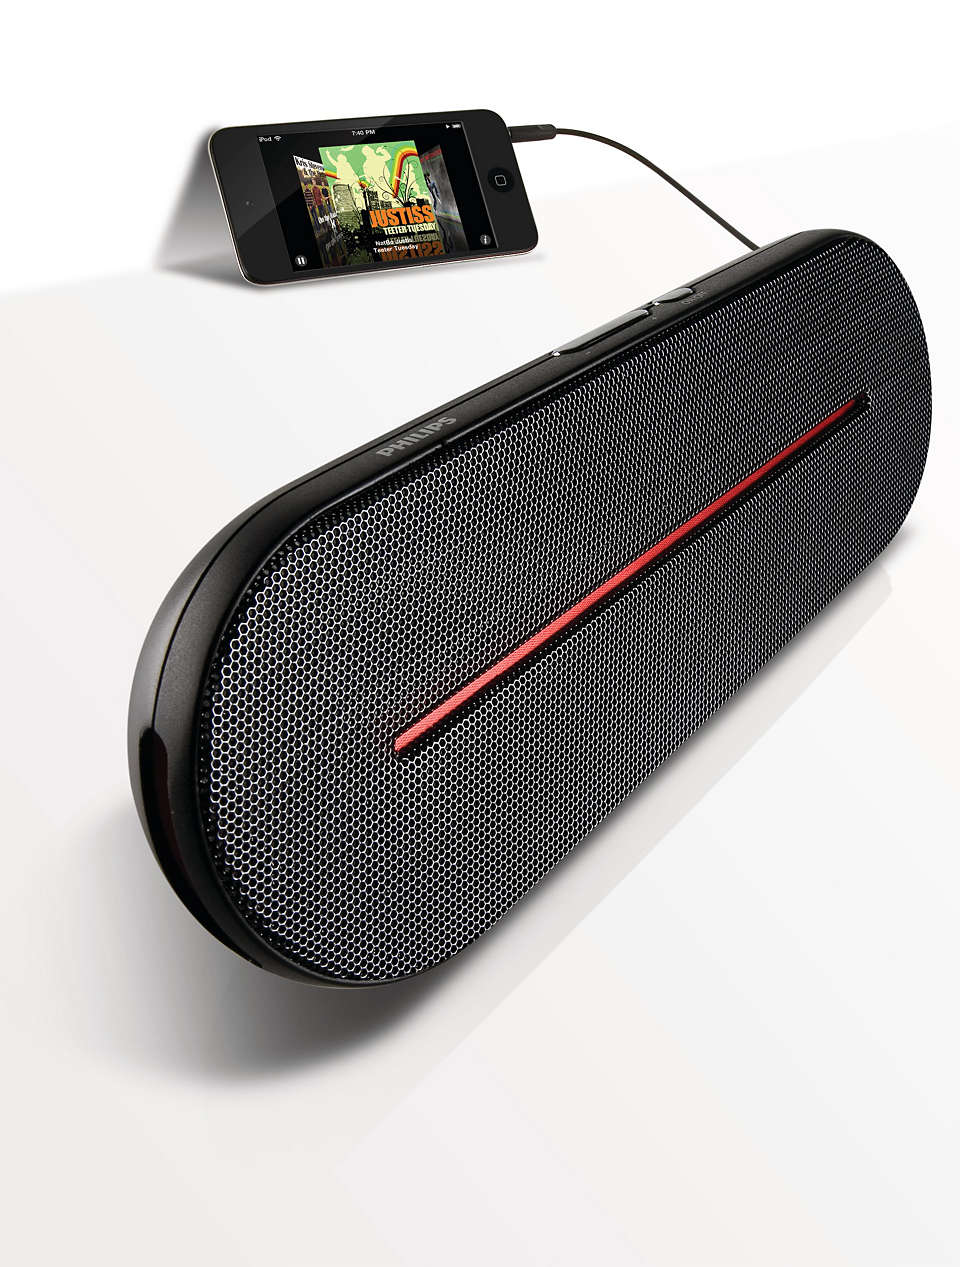 Portable, high-quality stereo sound